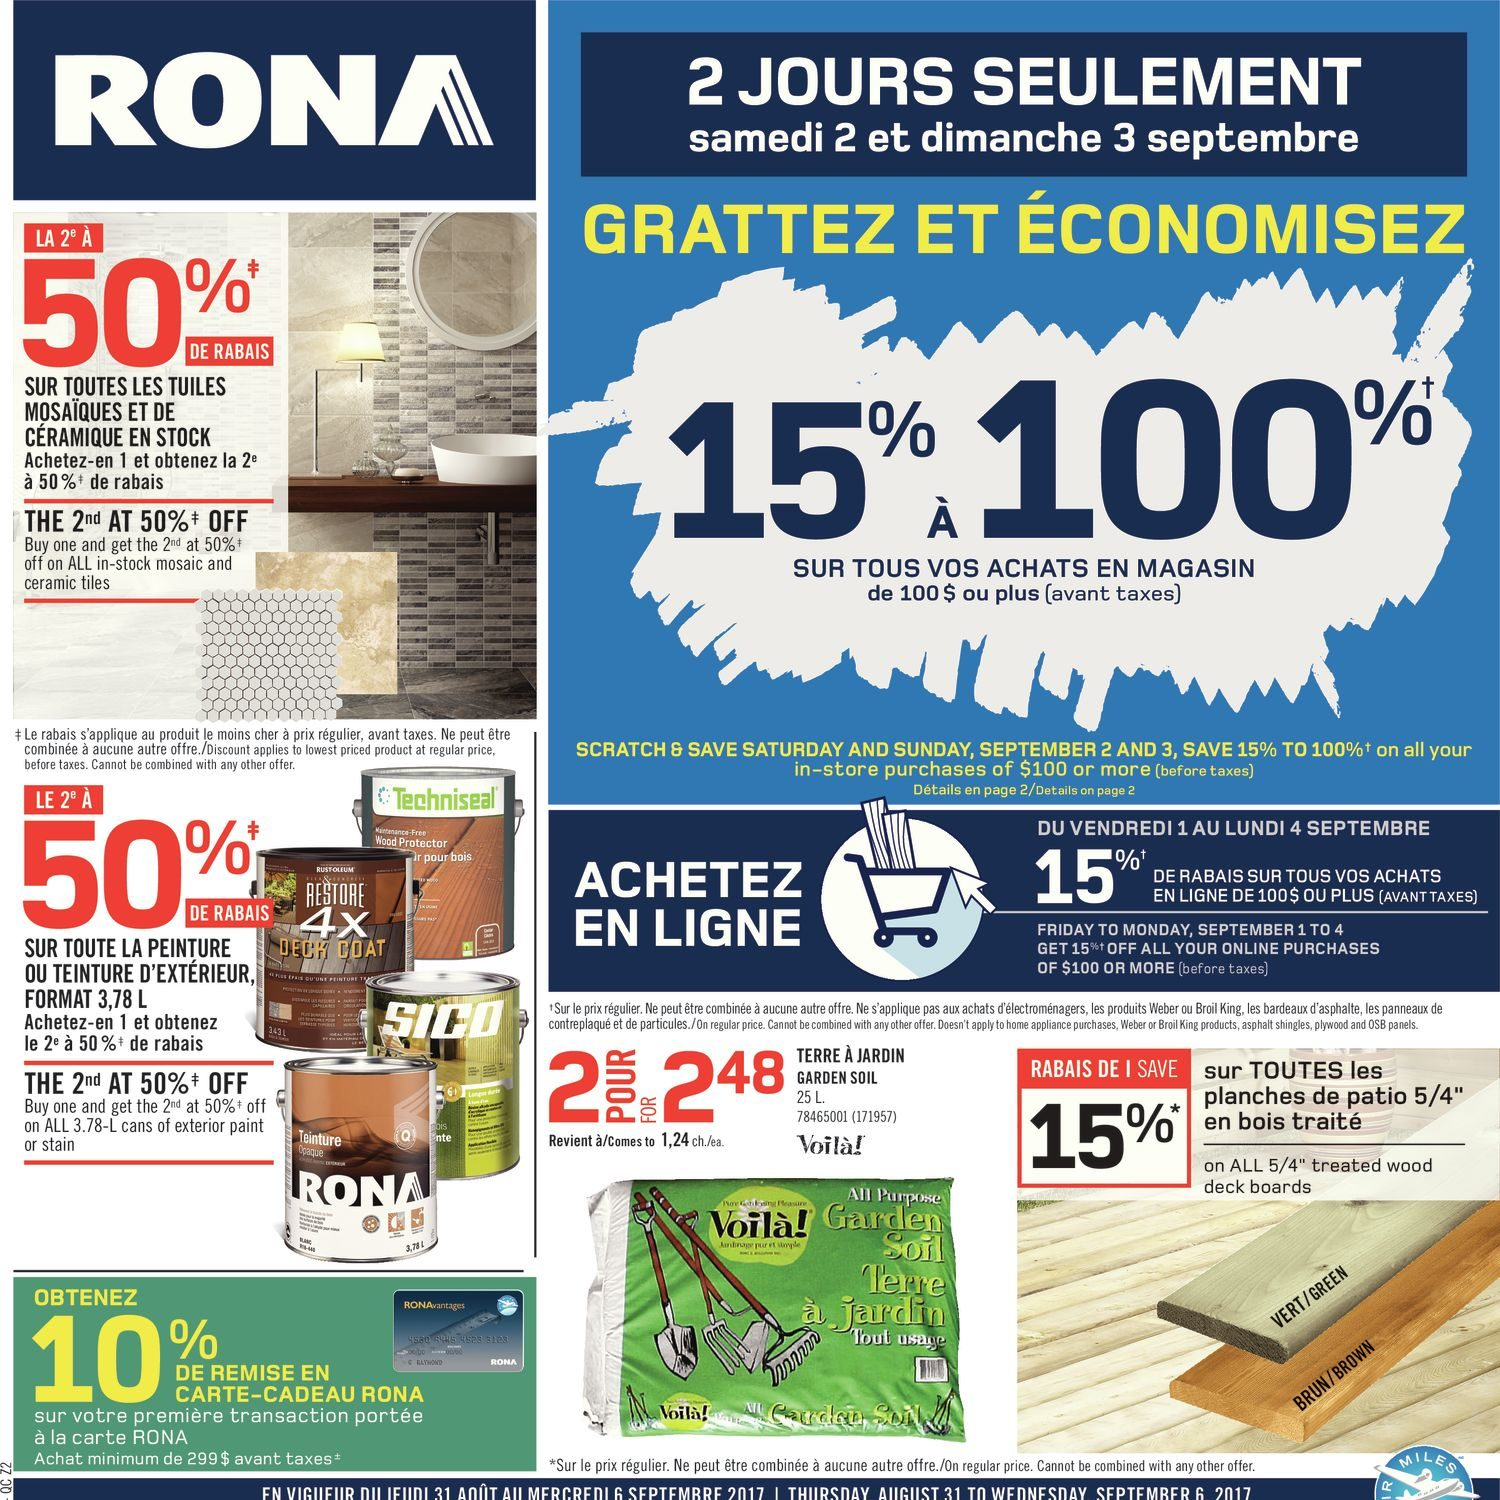 Carte Rona Accord D.Rona Weekly Flyer Weekly Aug 31 Sep 6 Redflagdeals Com